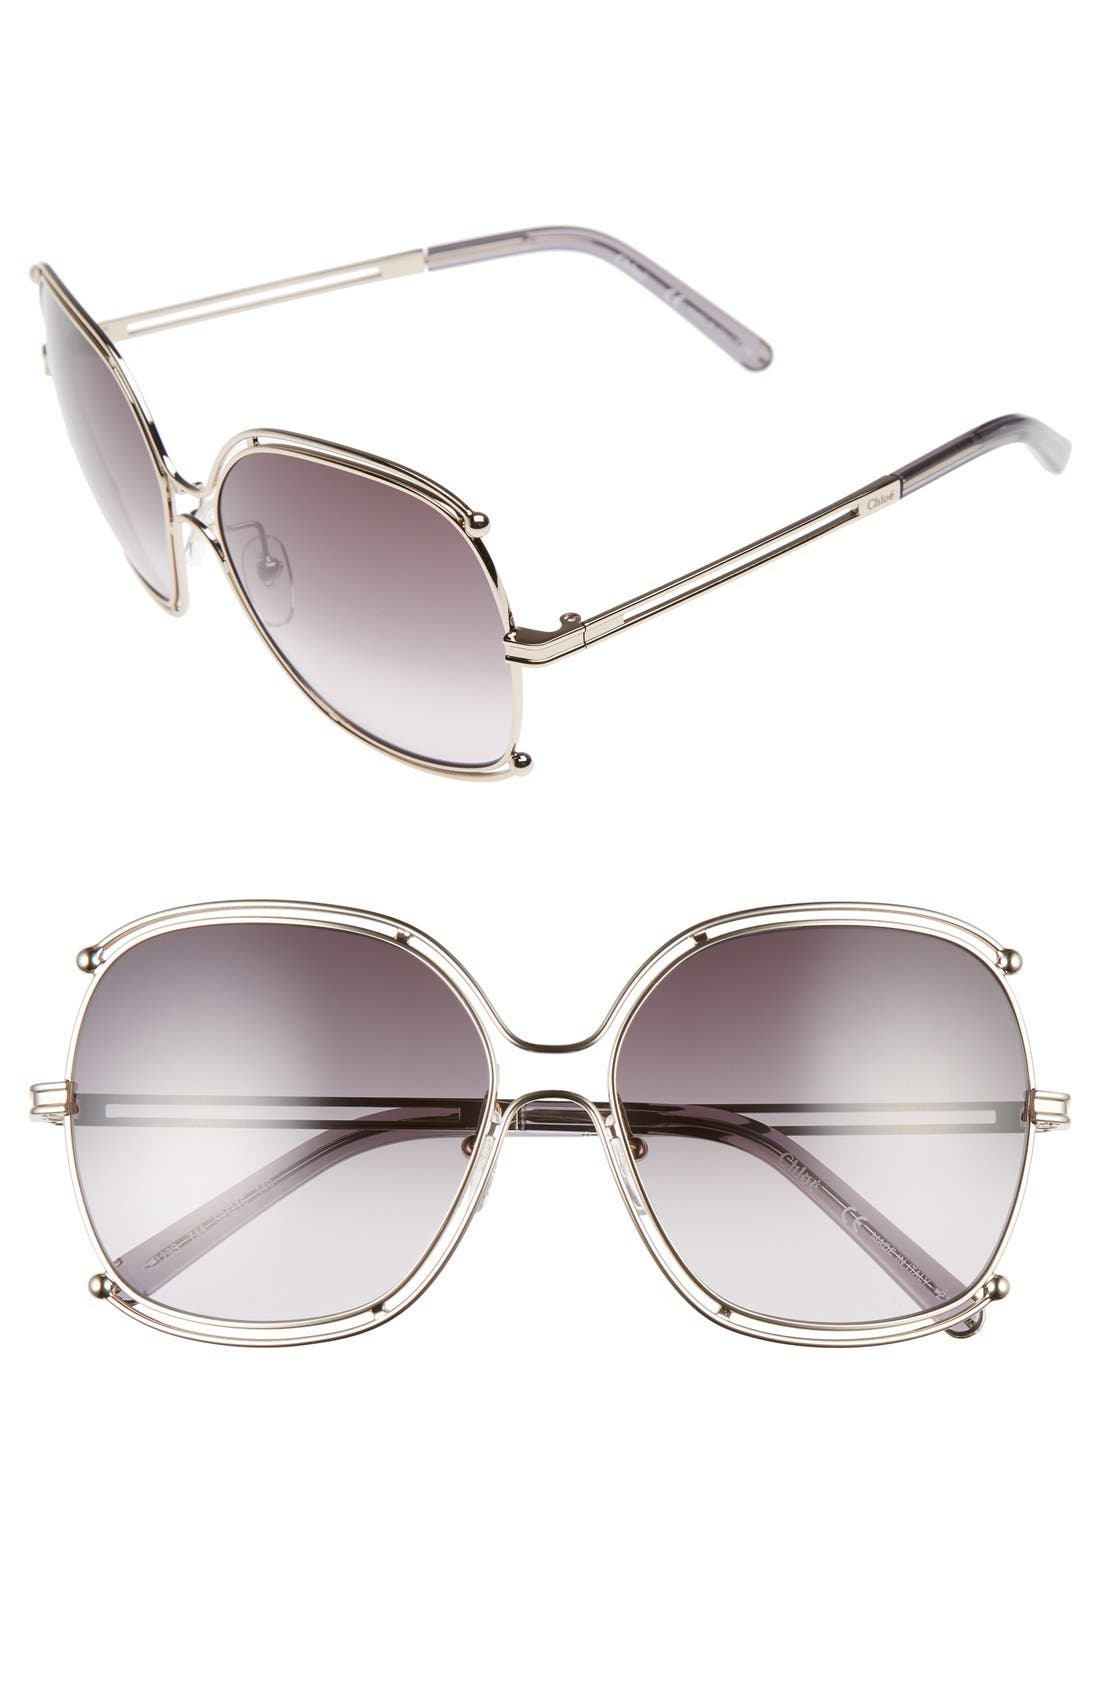 Isidora 59mm Square Sunglasses,                         Main,                         color,